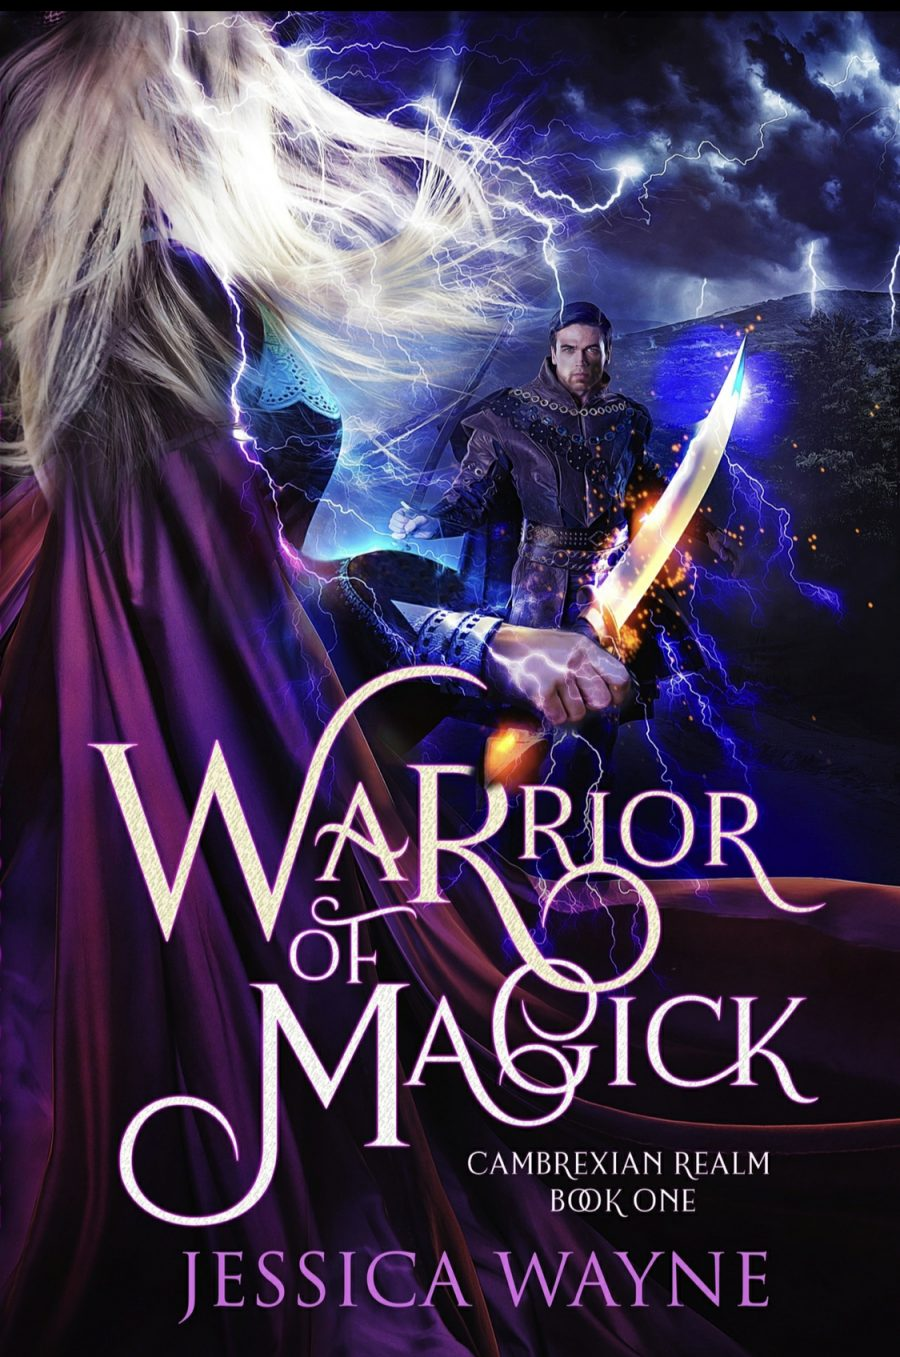 Warrior of Magick by Jessica Wayne - A Book Review #BookReview #Fantasy #NewReleases #GreatRead #KindleUnlimited #KU